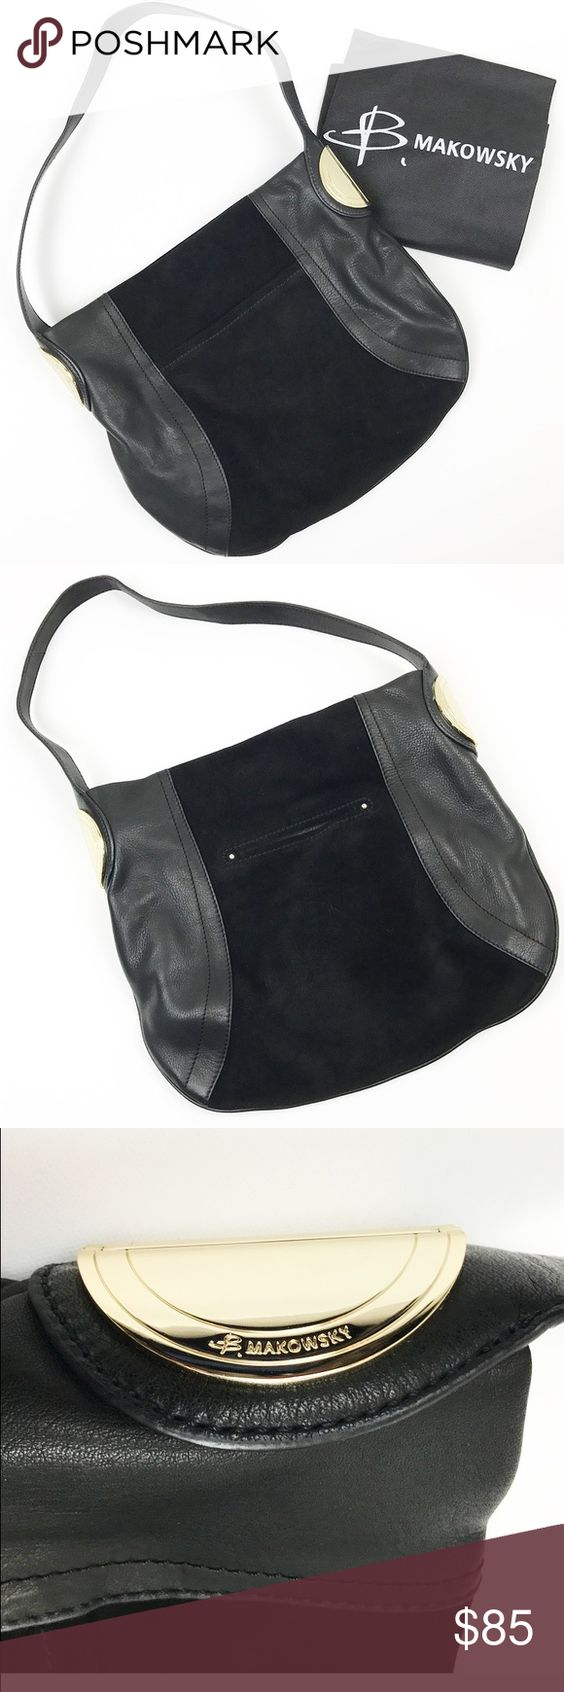 B. Makowsky new black leather and suede boho purse B. Makowsky black leather and suede Hobo Bag with gold tone hardware. Inside is leopard print polysatin. Two main compartments, one zips, one has magnetic closure. A236111. Measures 12 by 10 by 5. NEW without tags. Bought and never used. B. Makowsky Bags Hobos